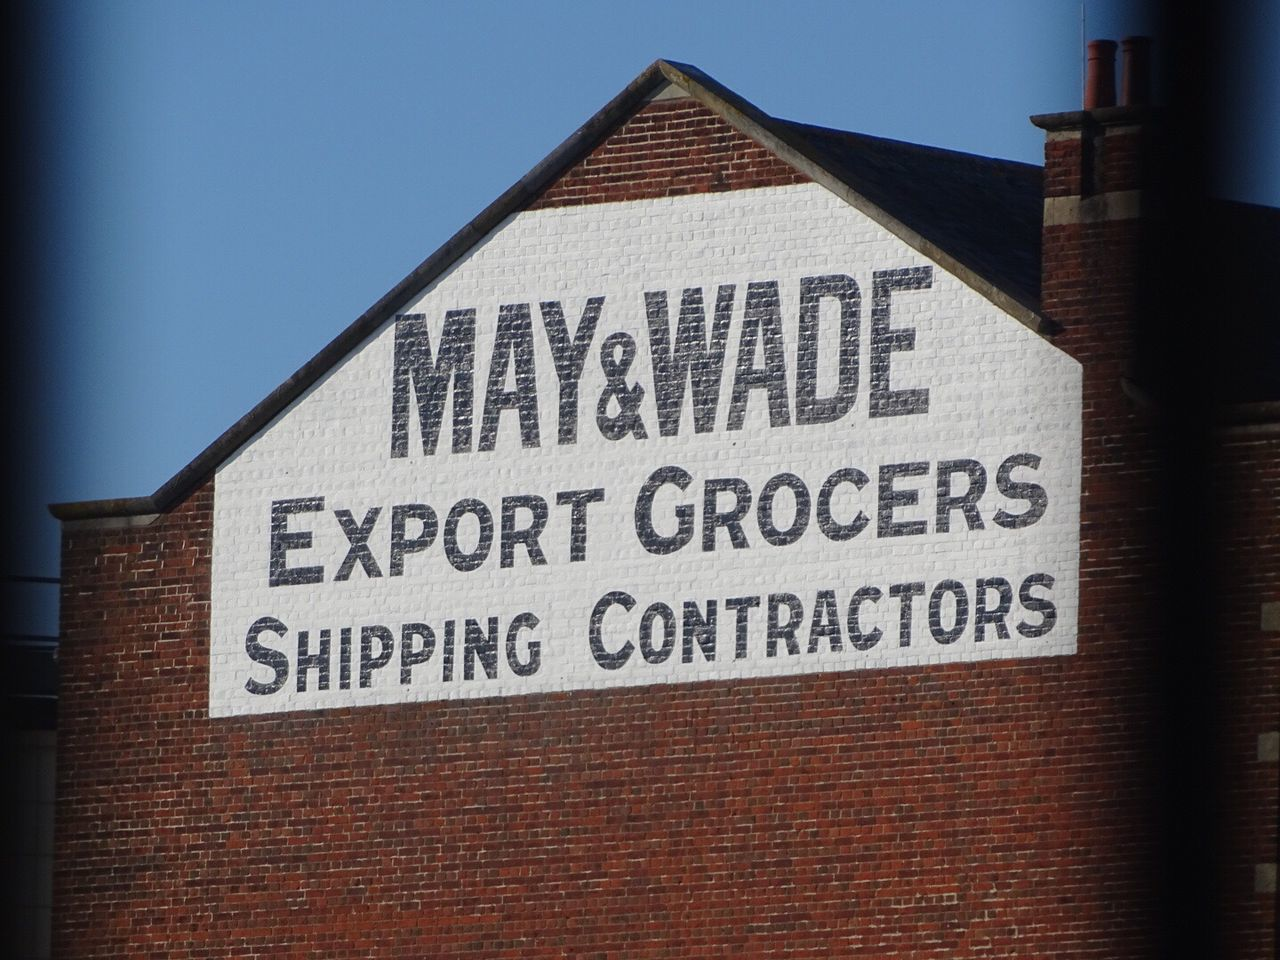 Building Exterior Architecture Southampton Southampton Docks Grocer Export Sign Painted Brick Sony HX400v First Eyeem Photo